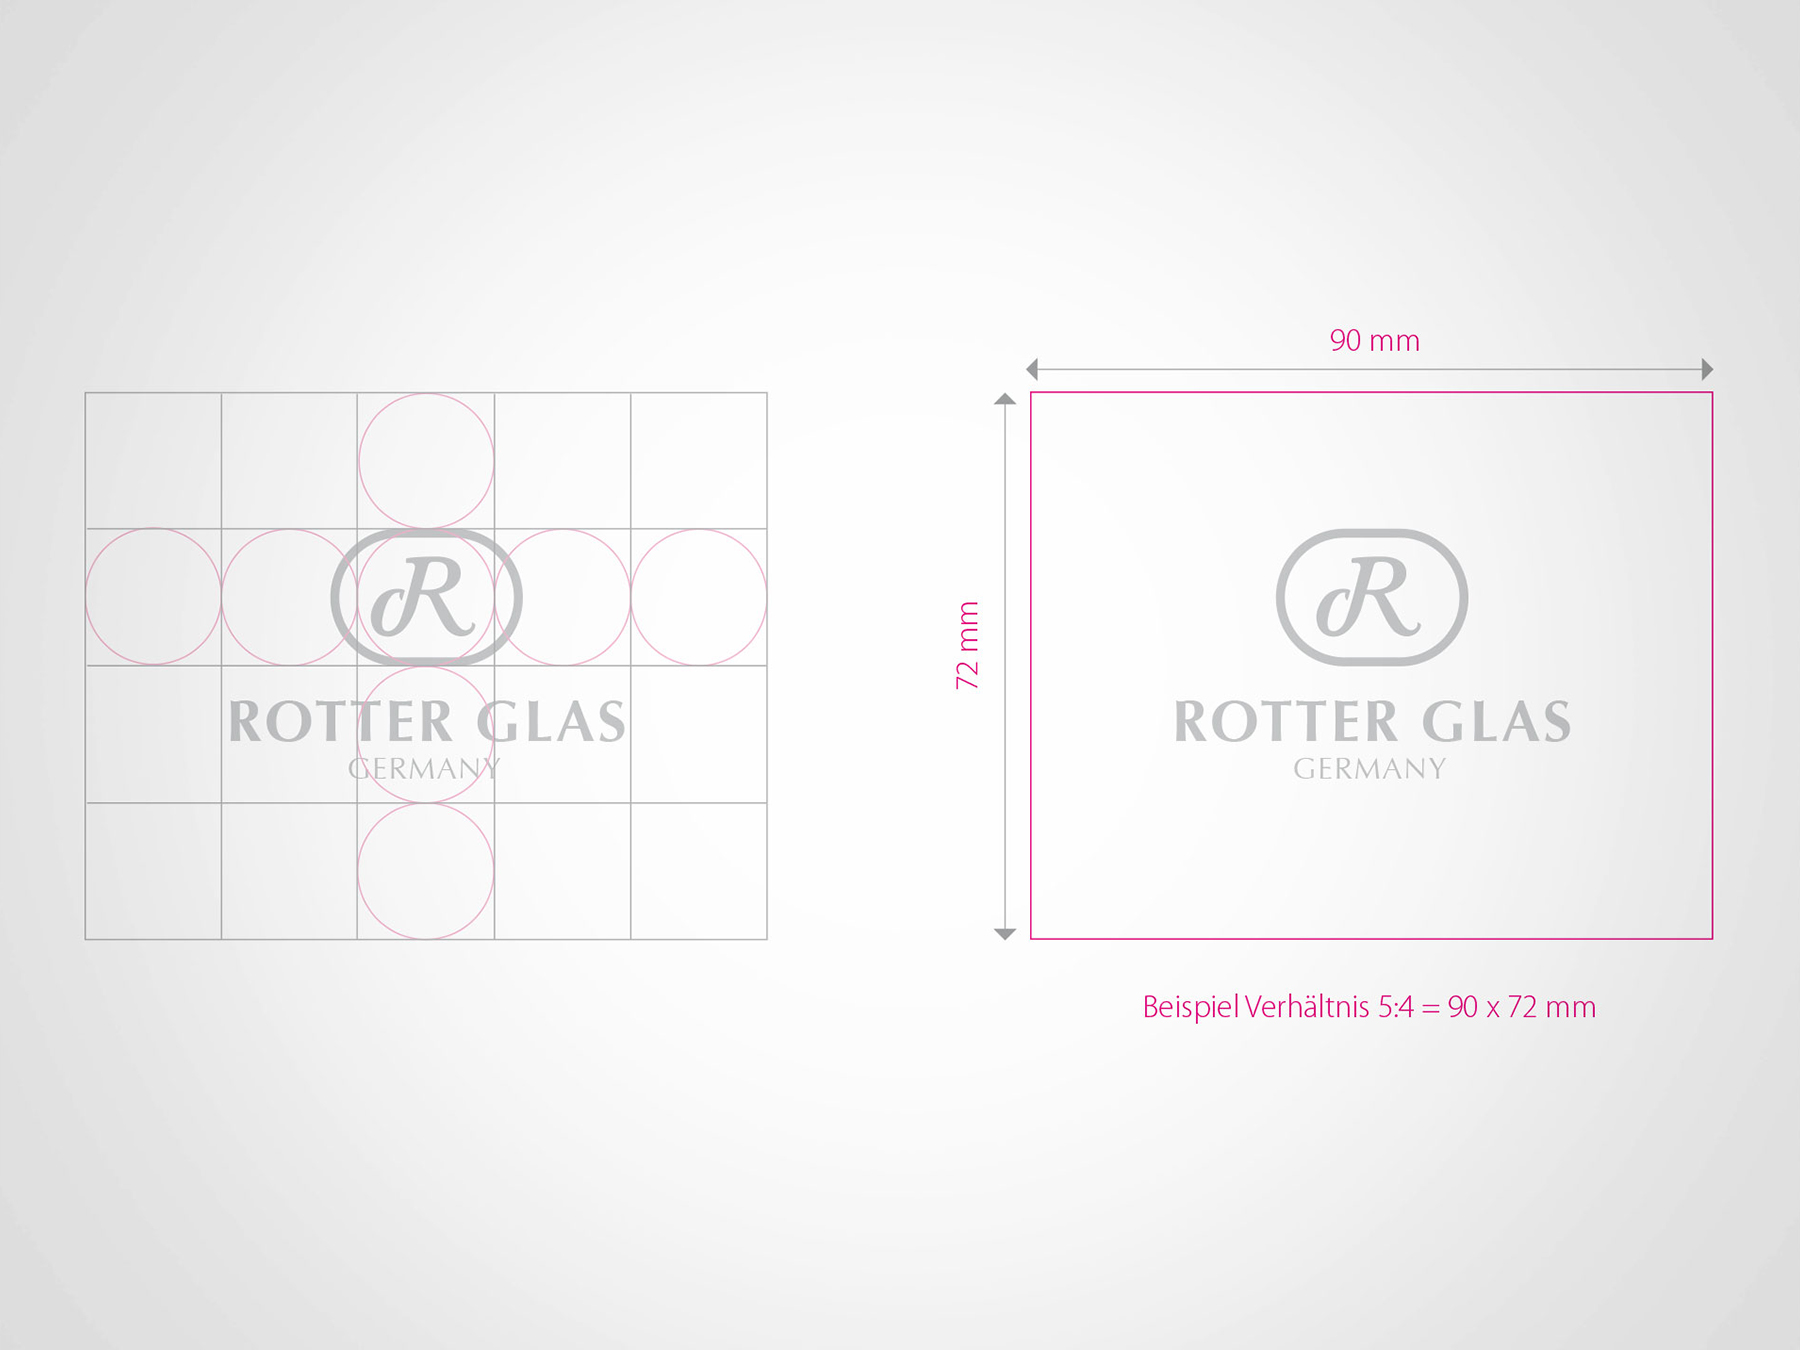 AuD Referenzen Rotter Glas Logo Kreation